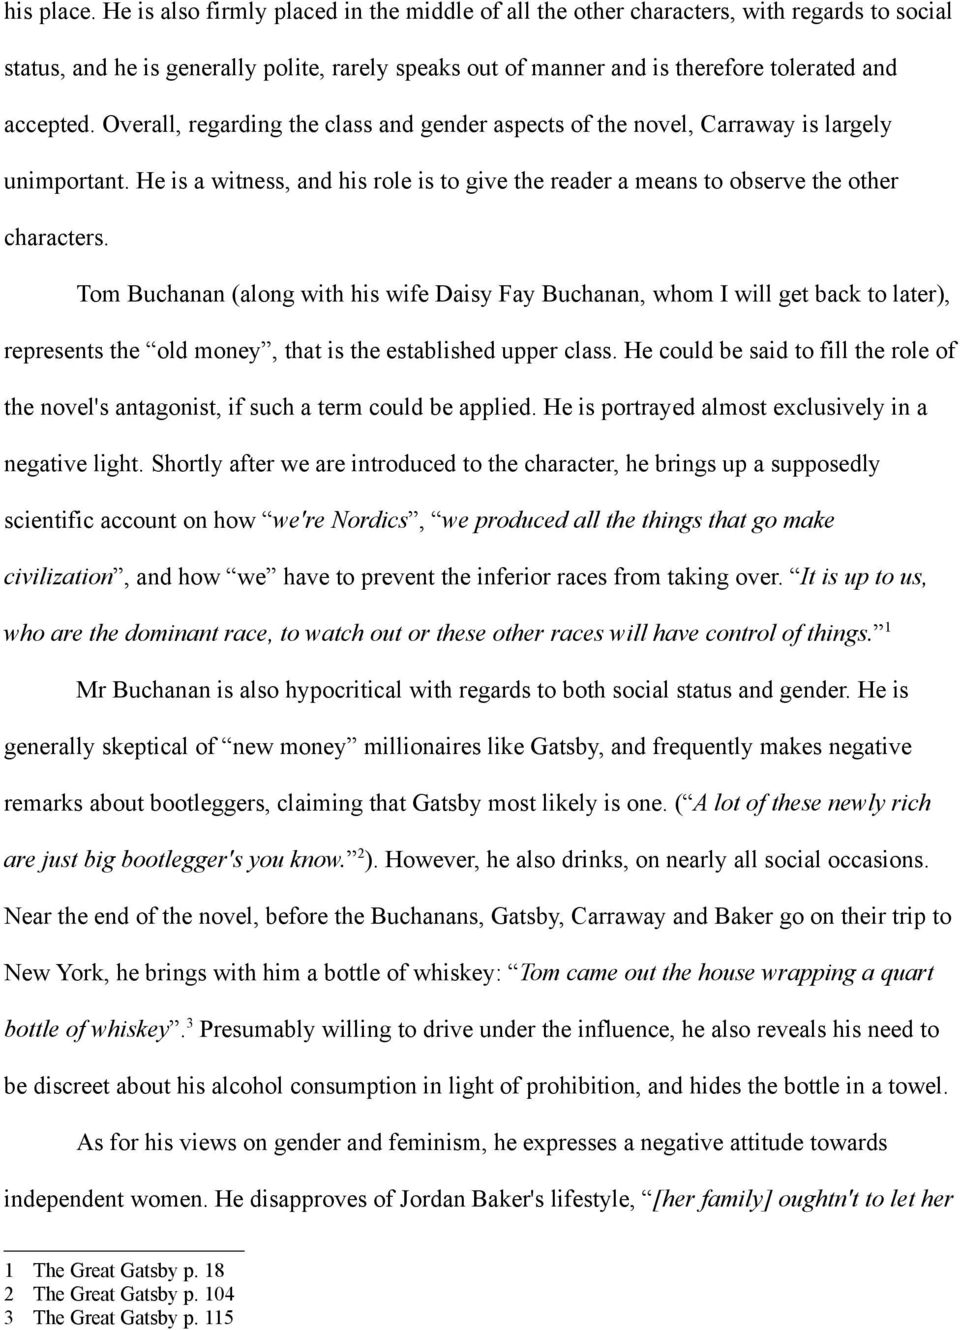 class and gender in the great gatsby pdf